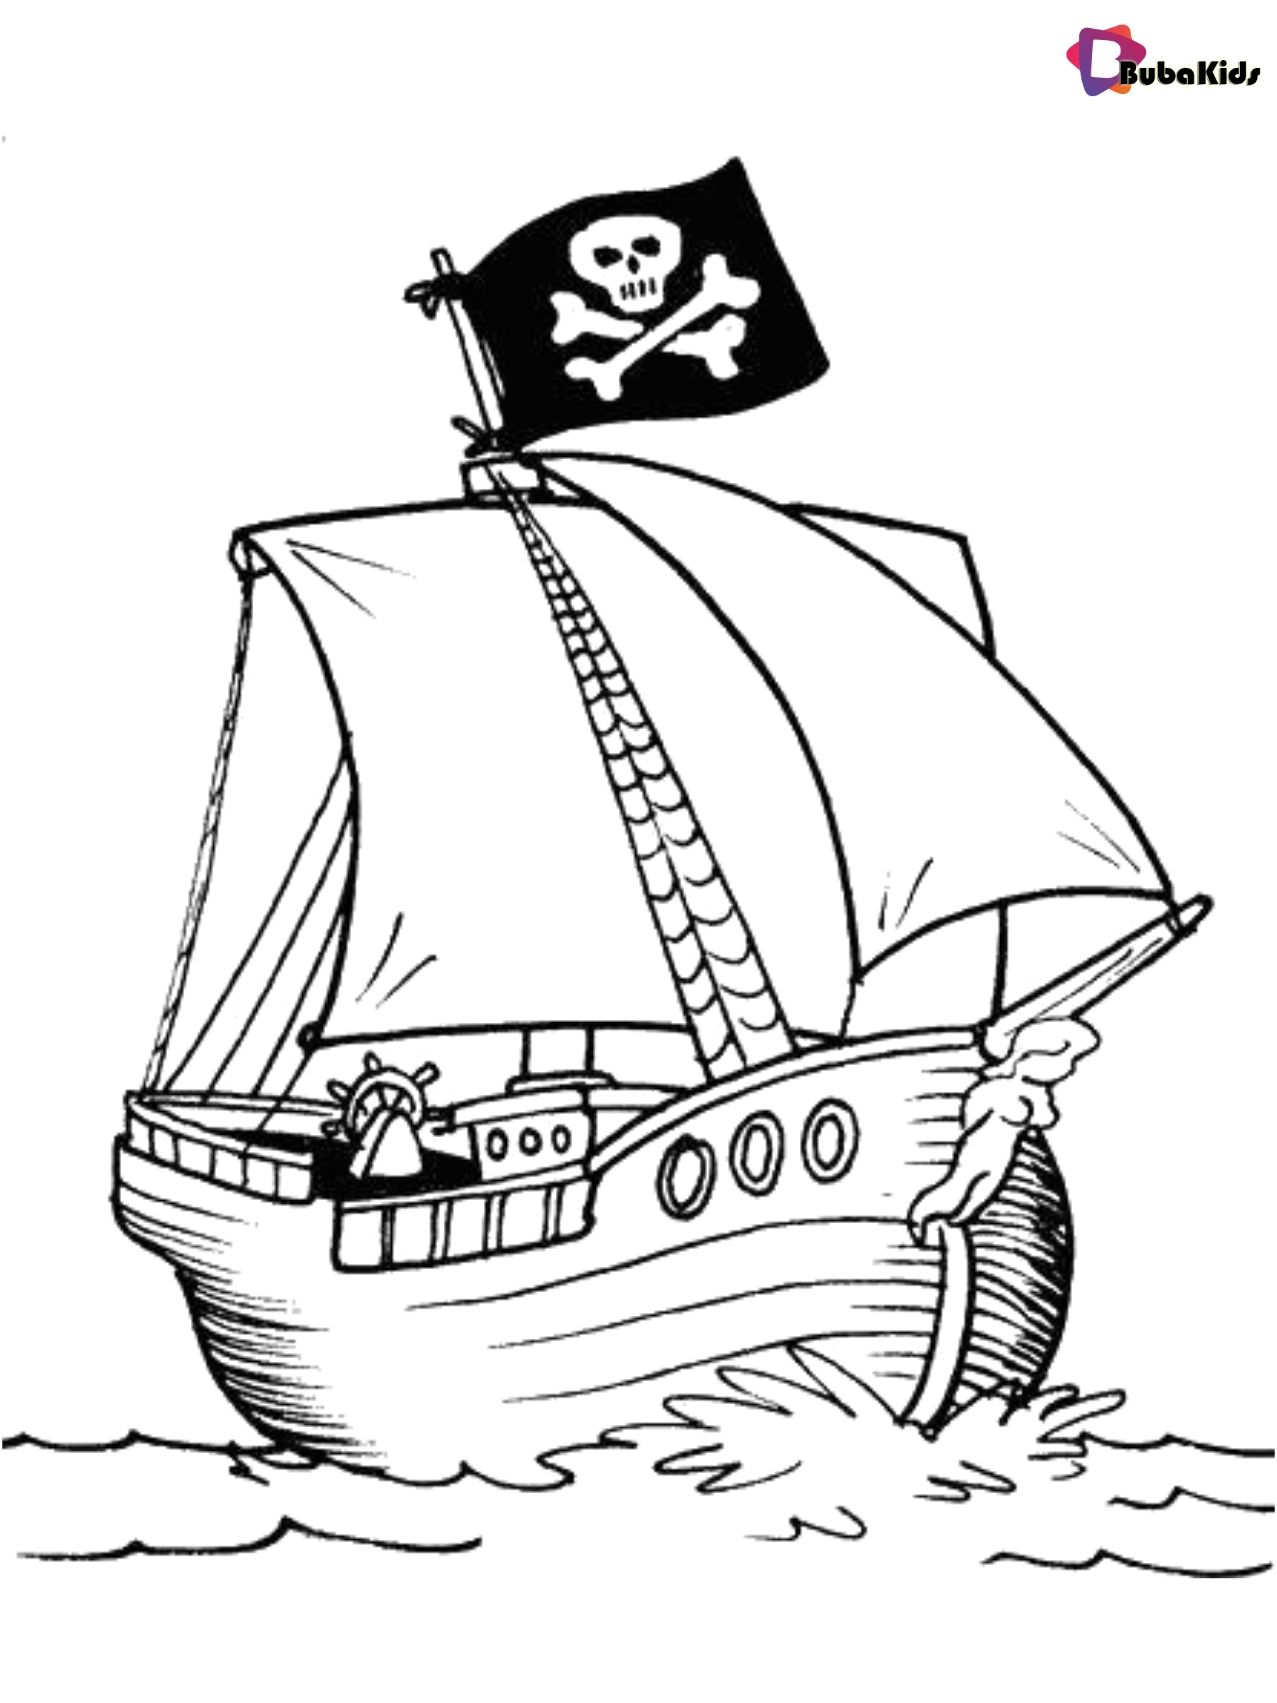 Pin By Bbb On Varvimispildid Pirate Coloring Pages Pirate Pictures Cartoon Coloring Pages